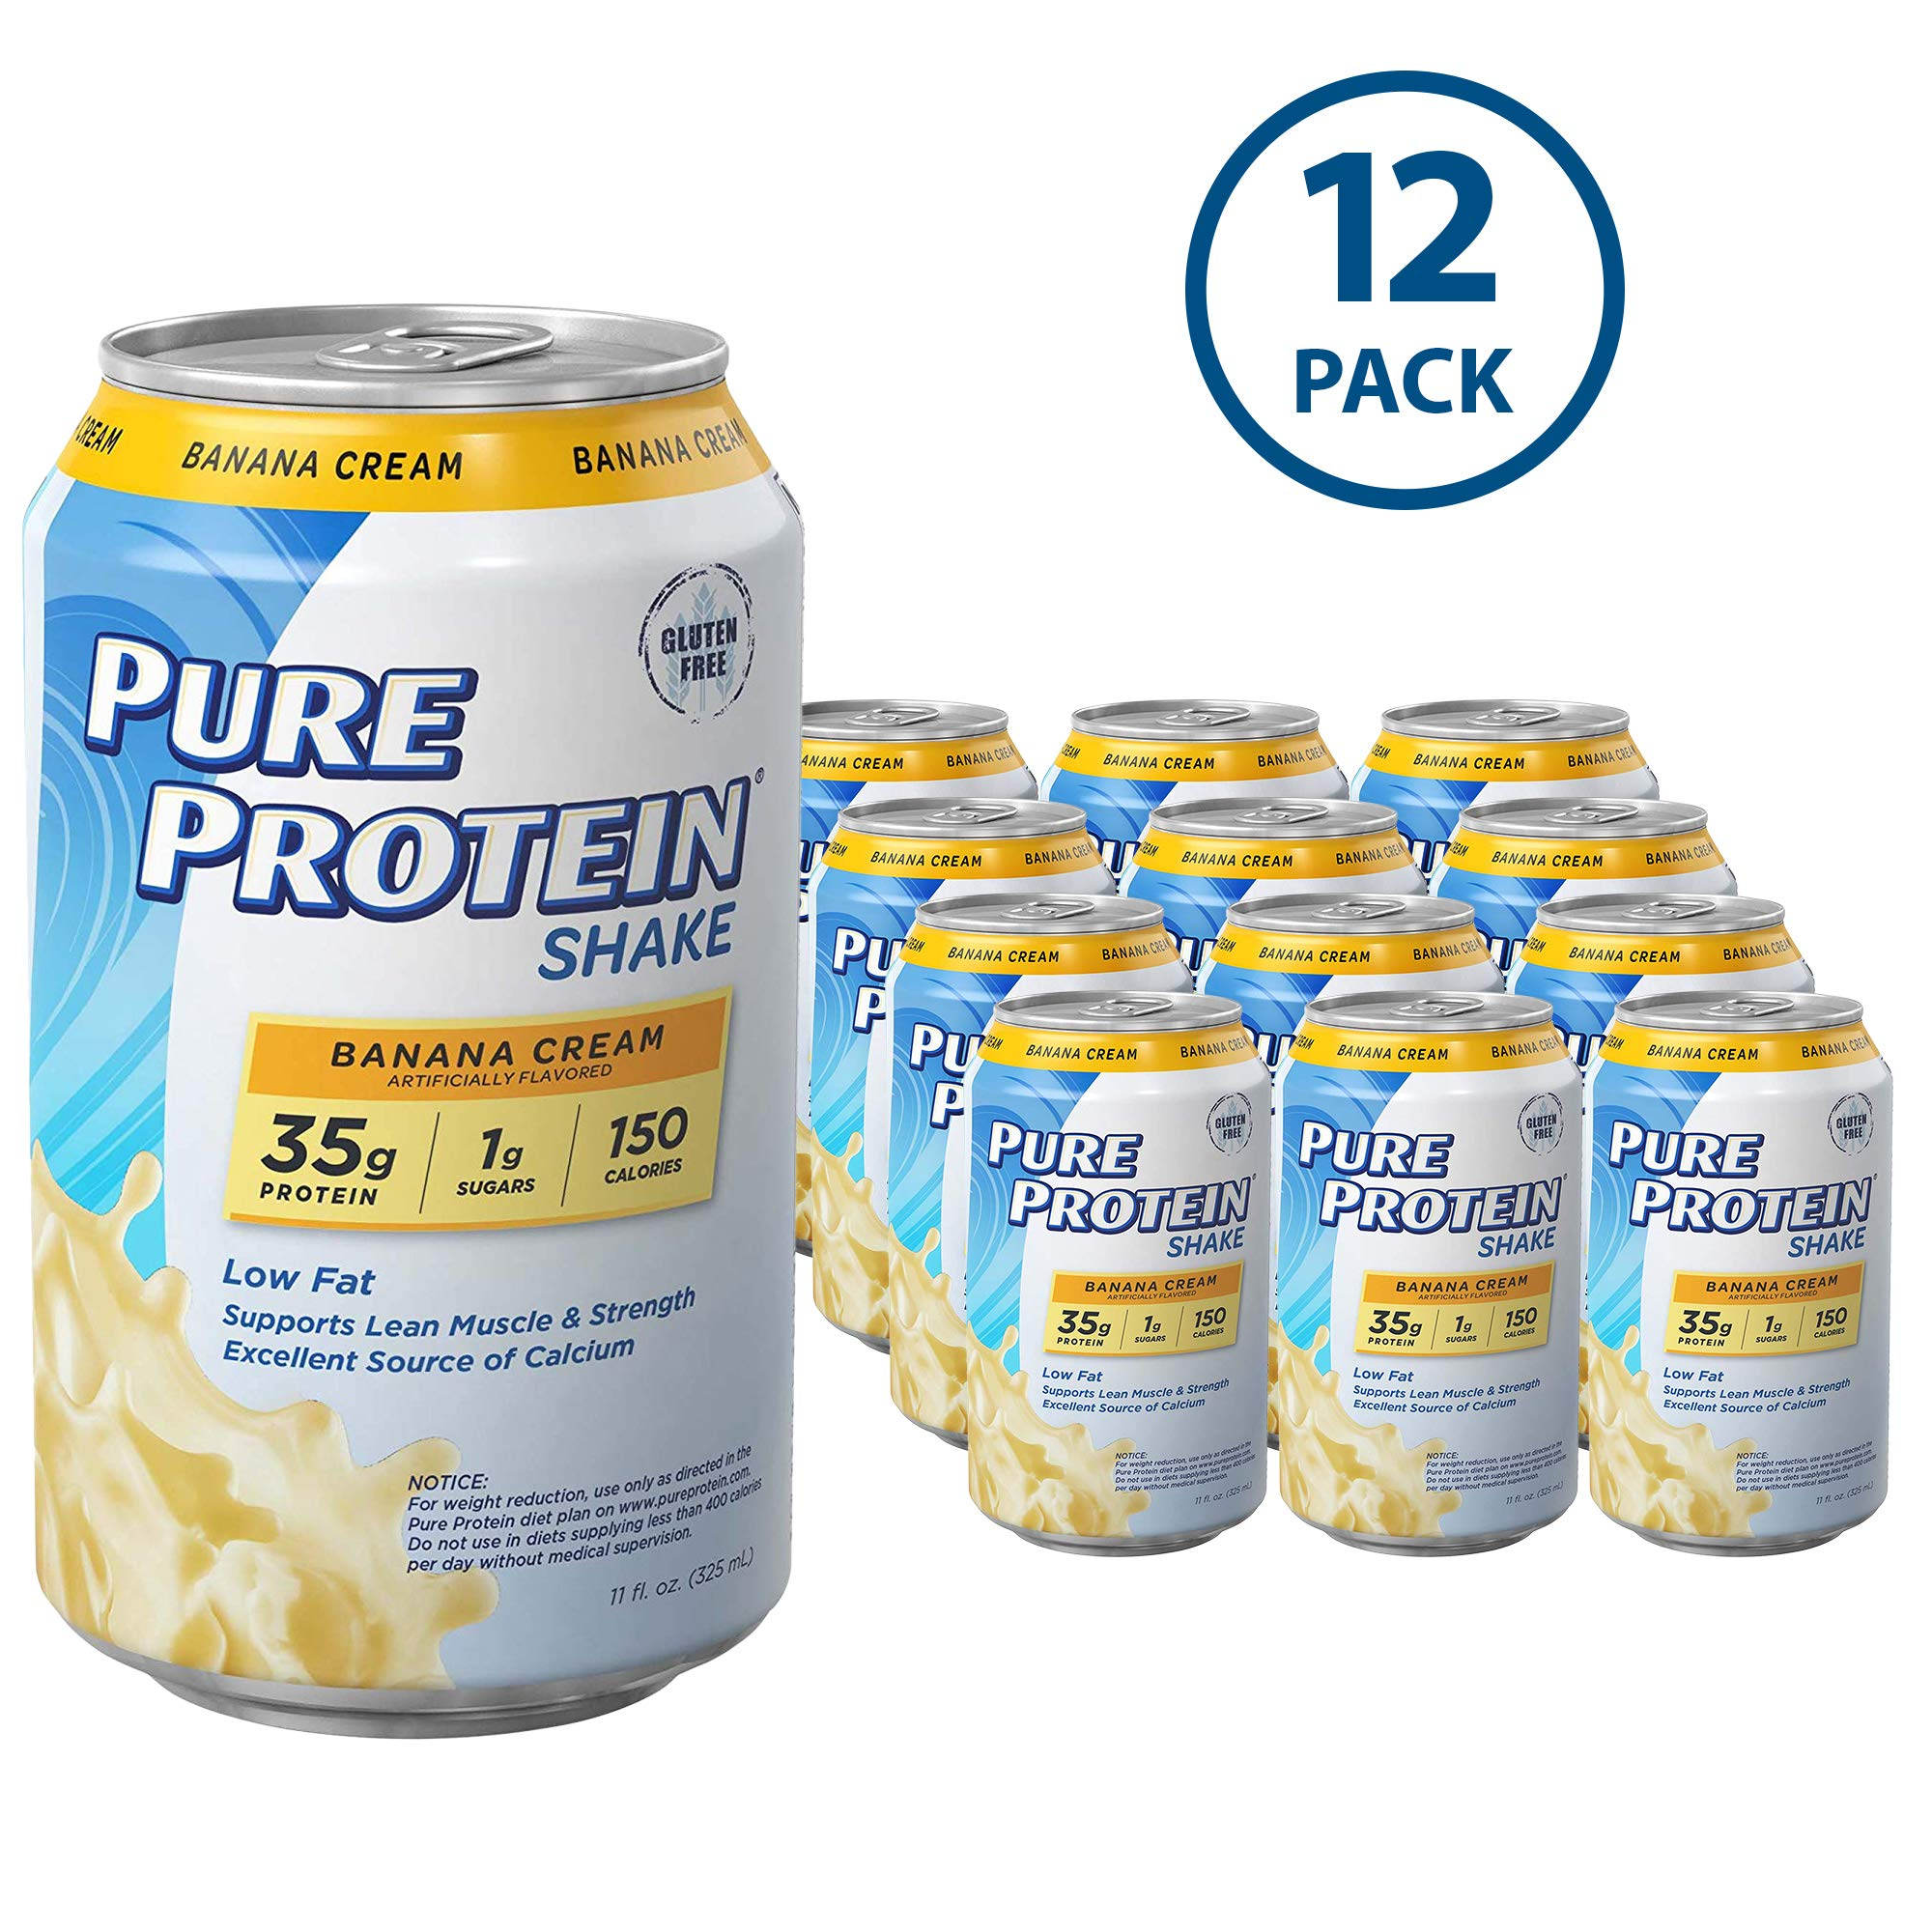 Pure Protein Ready to Drink Shakes, High Protein Banana Cream, 11oz, 12 count by Pure Protein